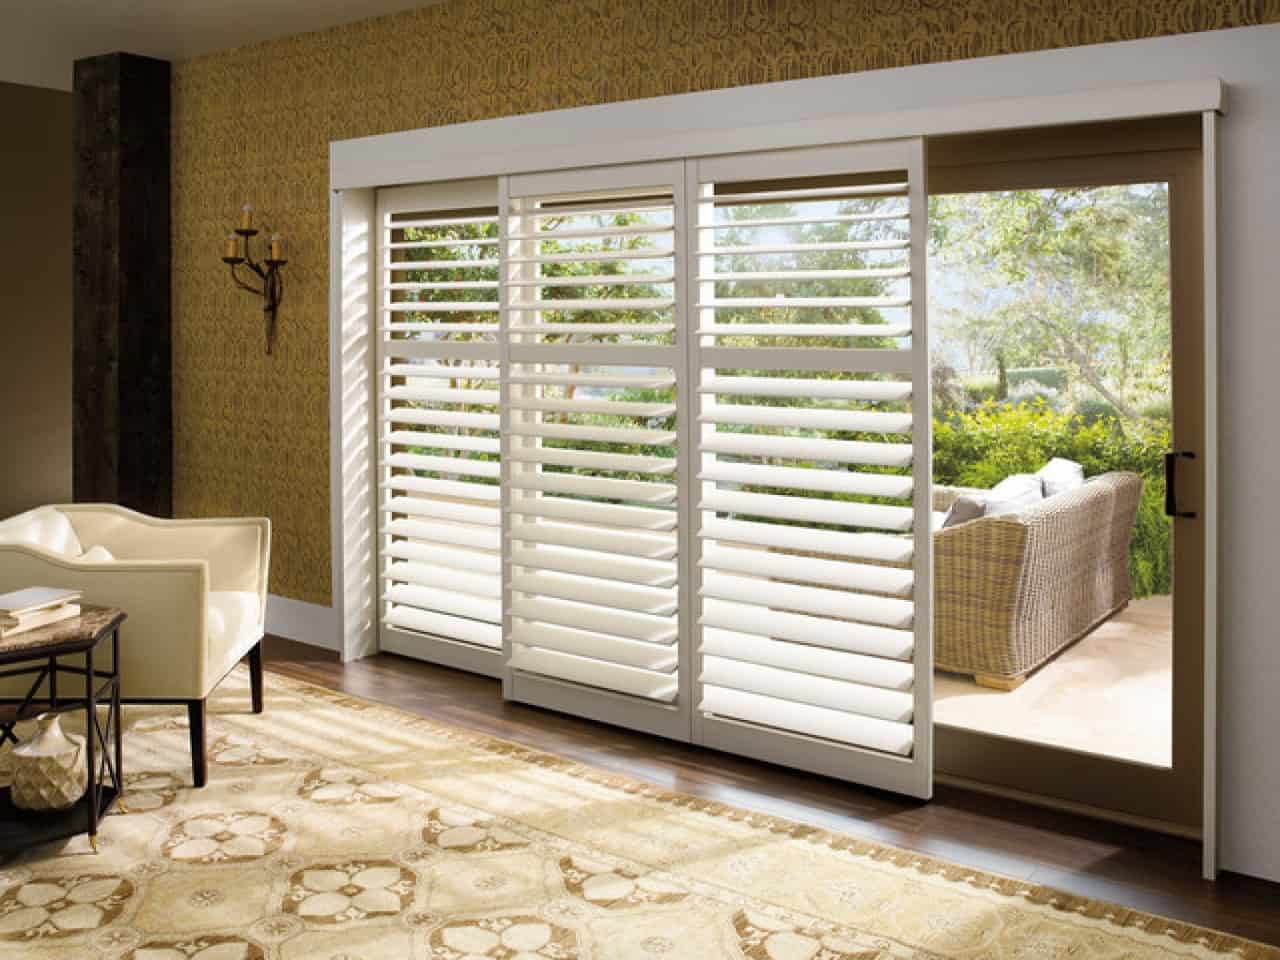 Window Treatments For Sliding Glass Doors IDEAS TIPS - Blinds patio